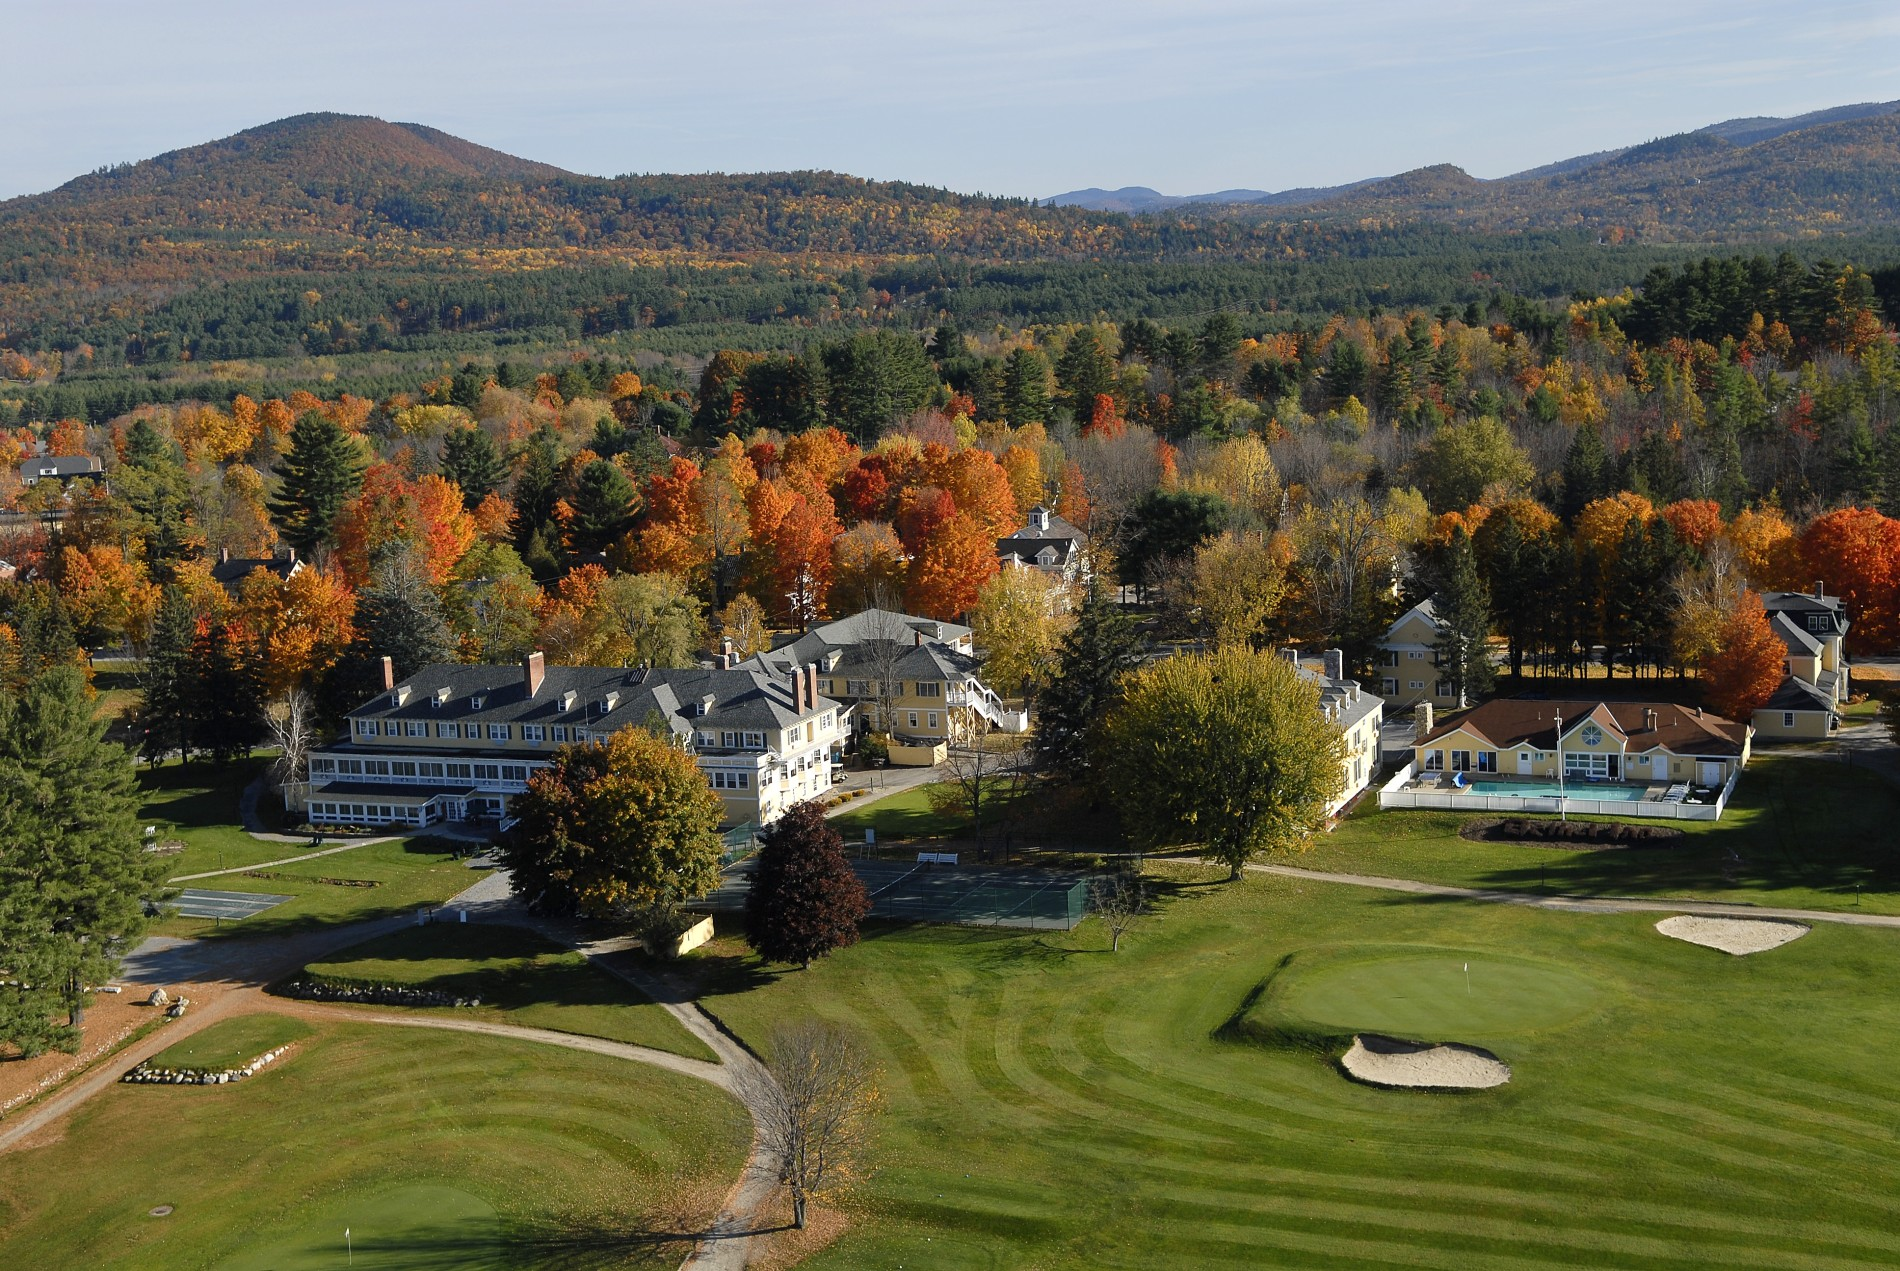 Bethel-Inn-Golf-Course-fall-aerial--credit-The-Bethel-Inn-Resort-(1).JPG-w1900.jpg